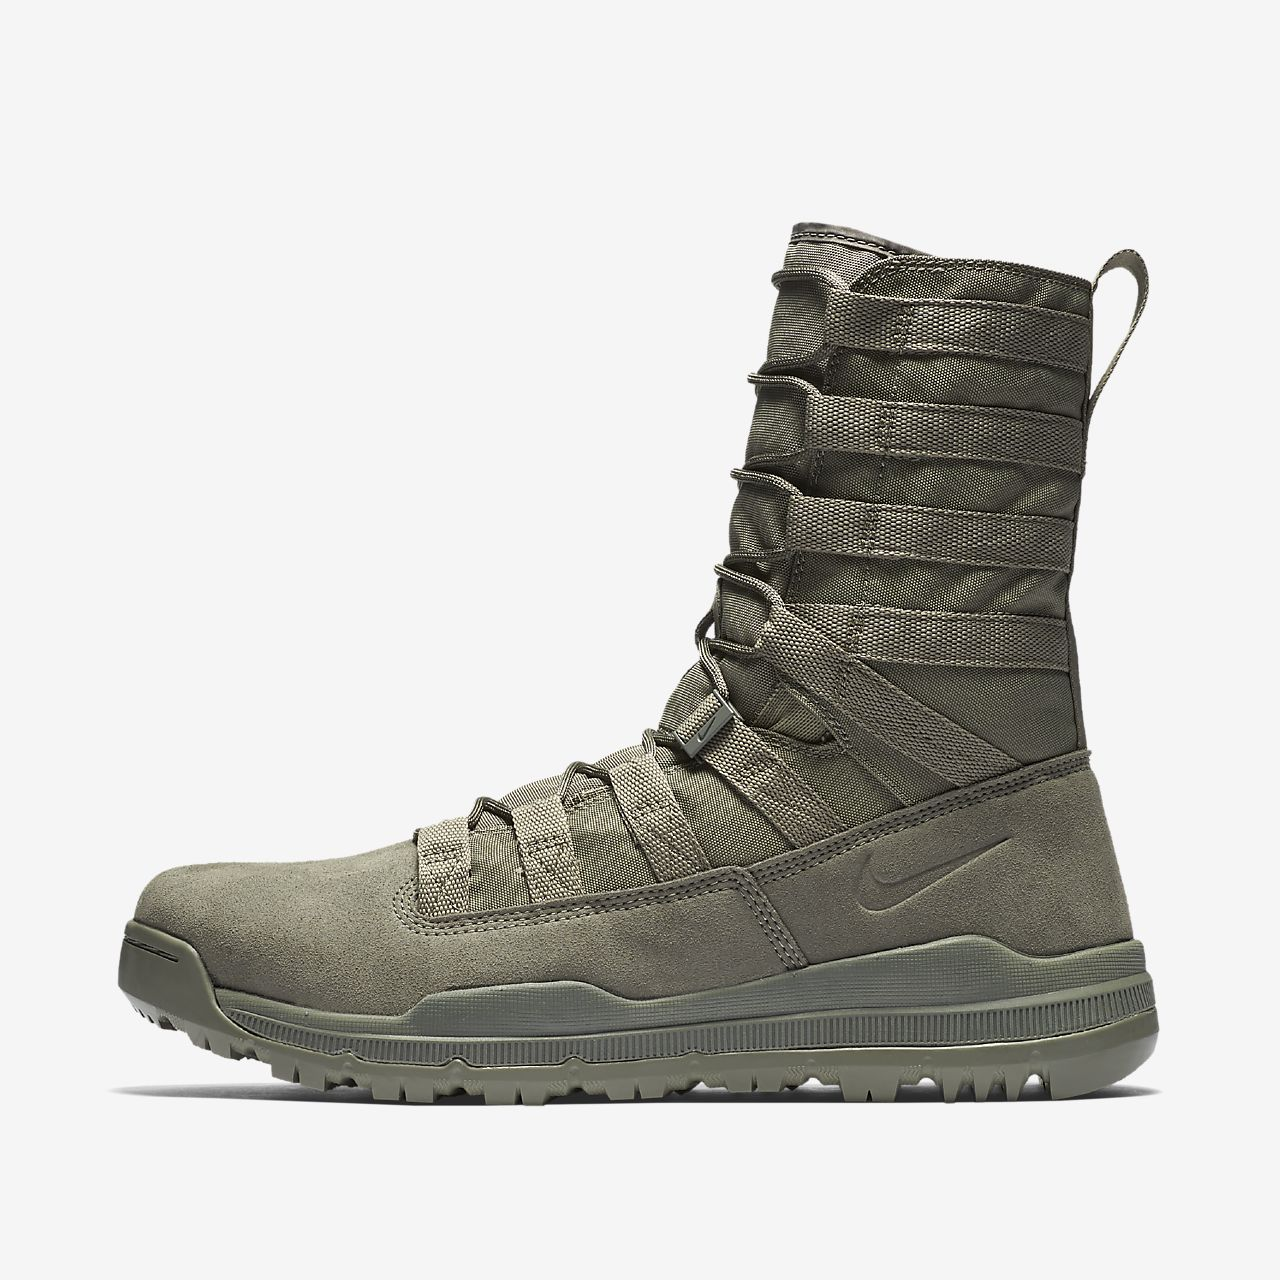 new products 80bfc 348b3 ... Nike SFB Gen 2 8